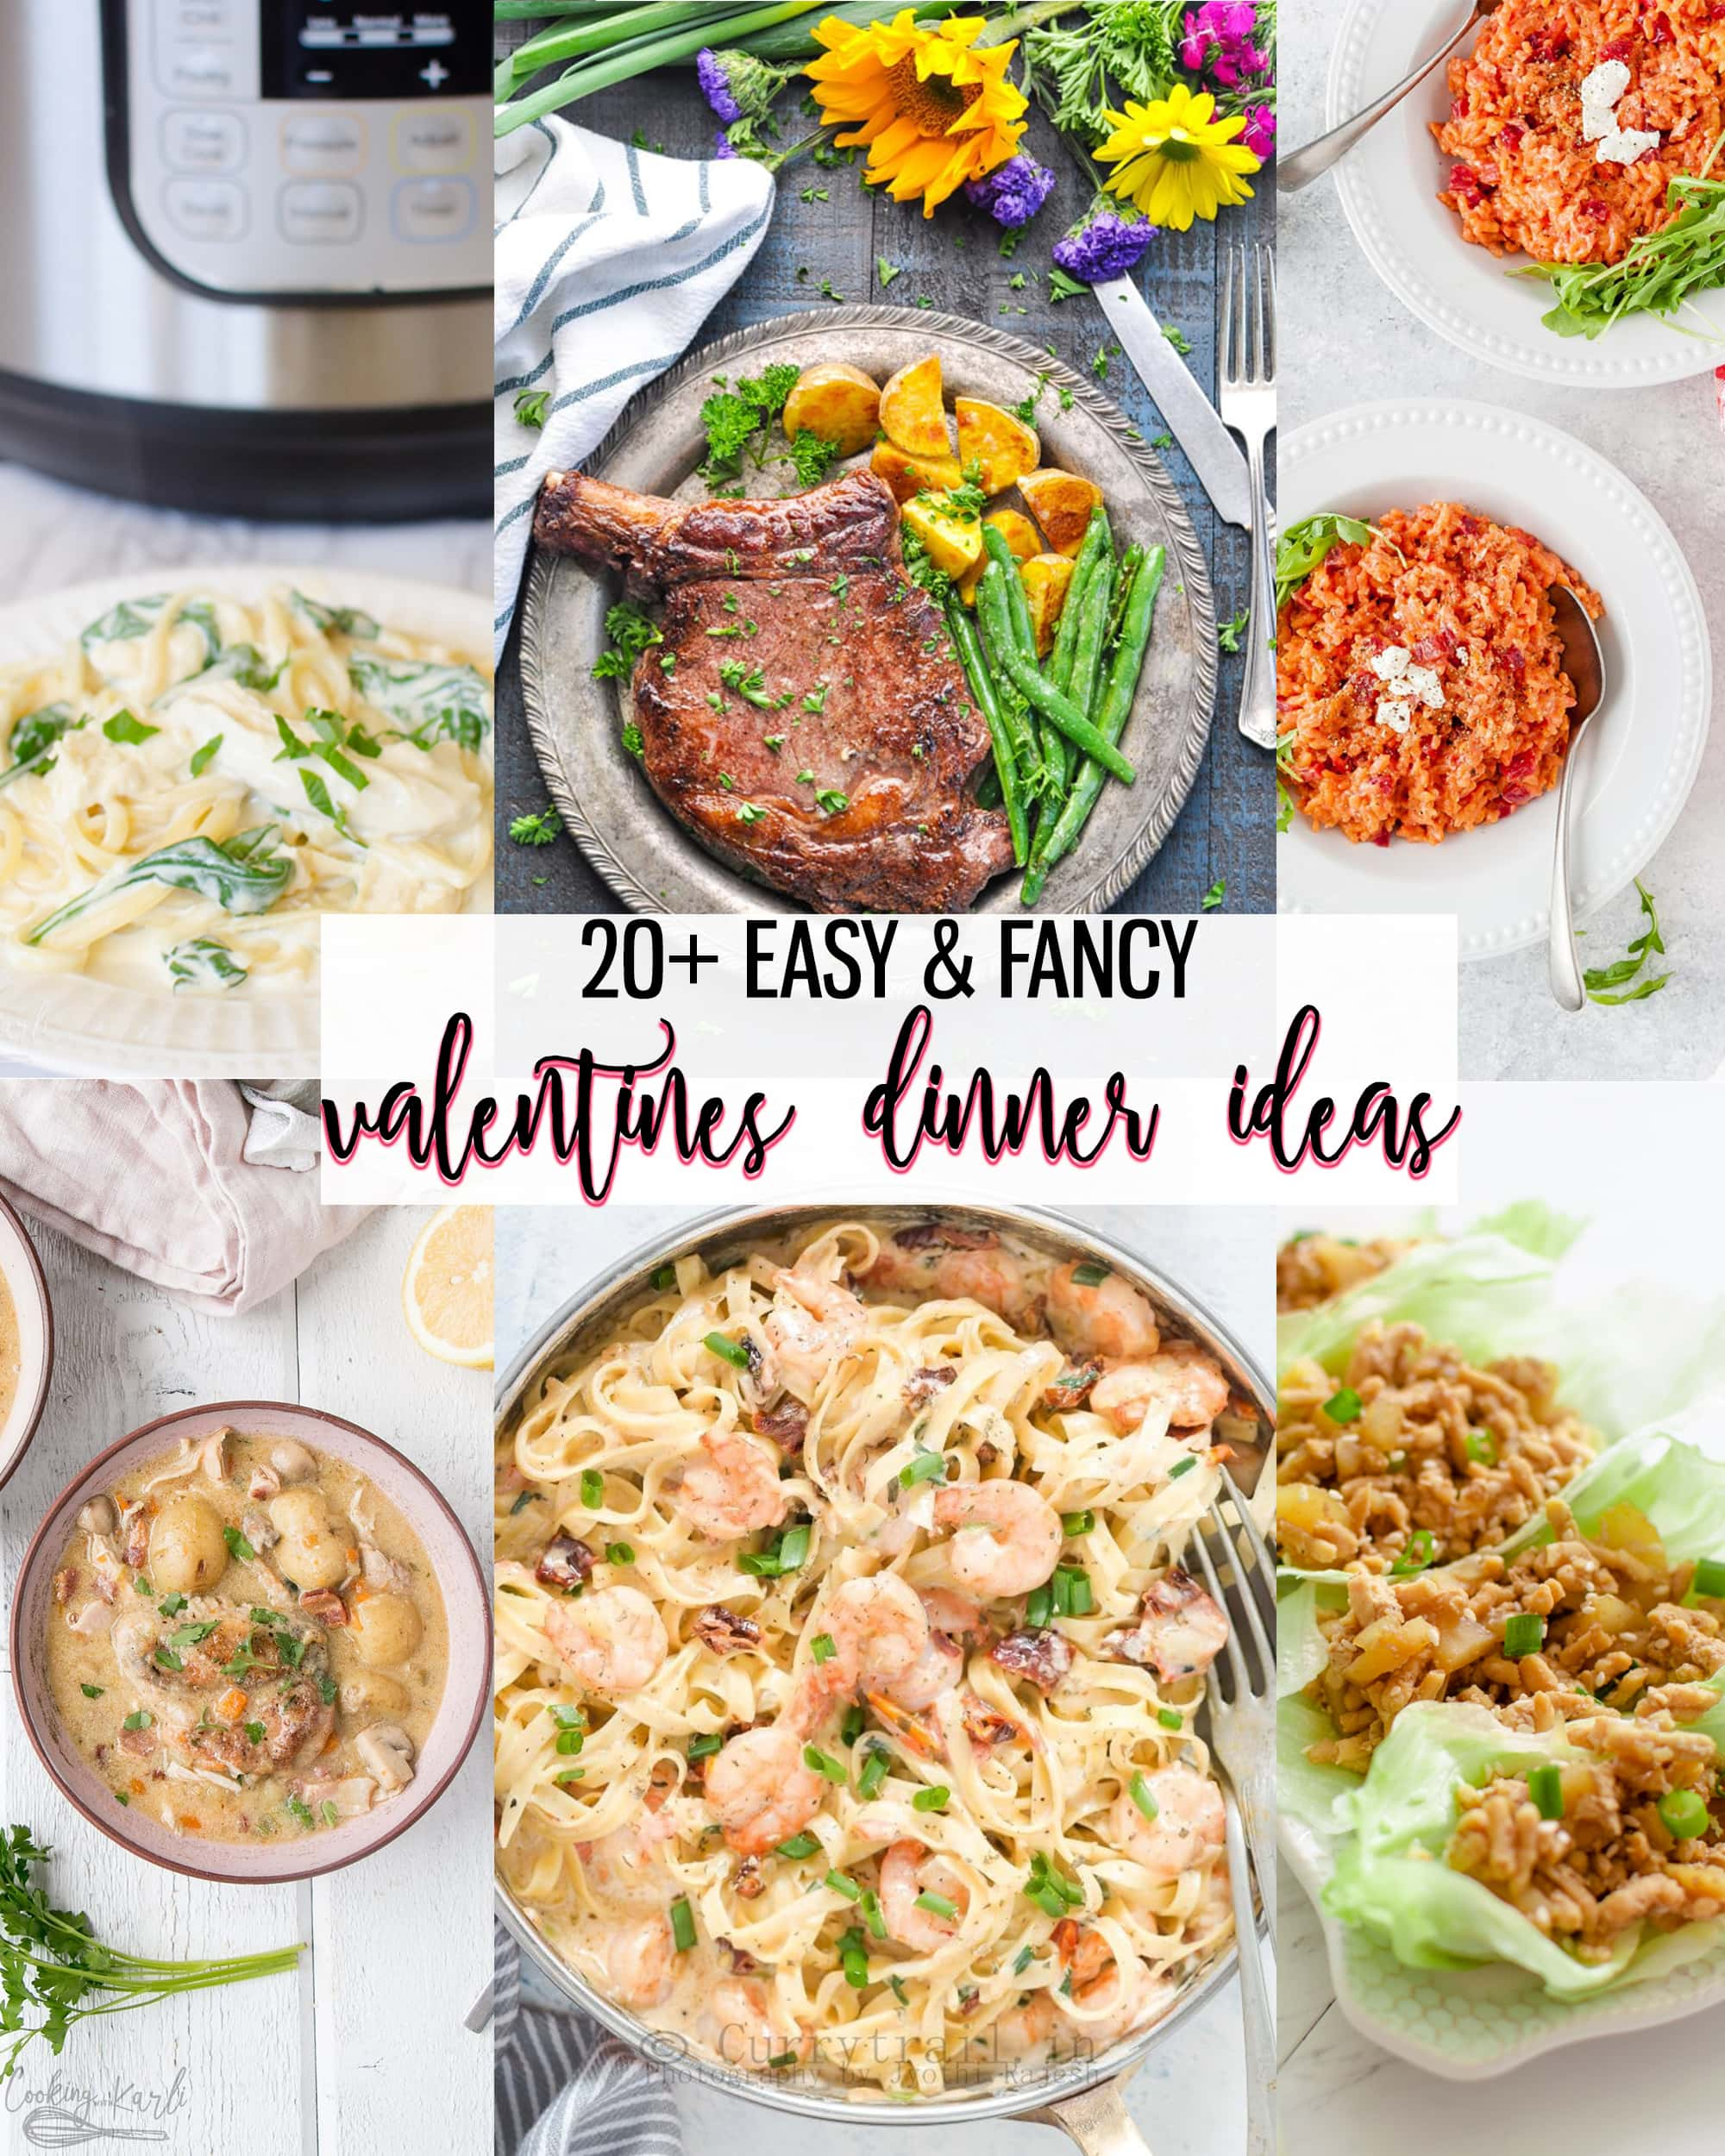 20+ Easy & Fancy Valentines Dinner Ideas